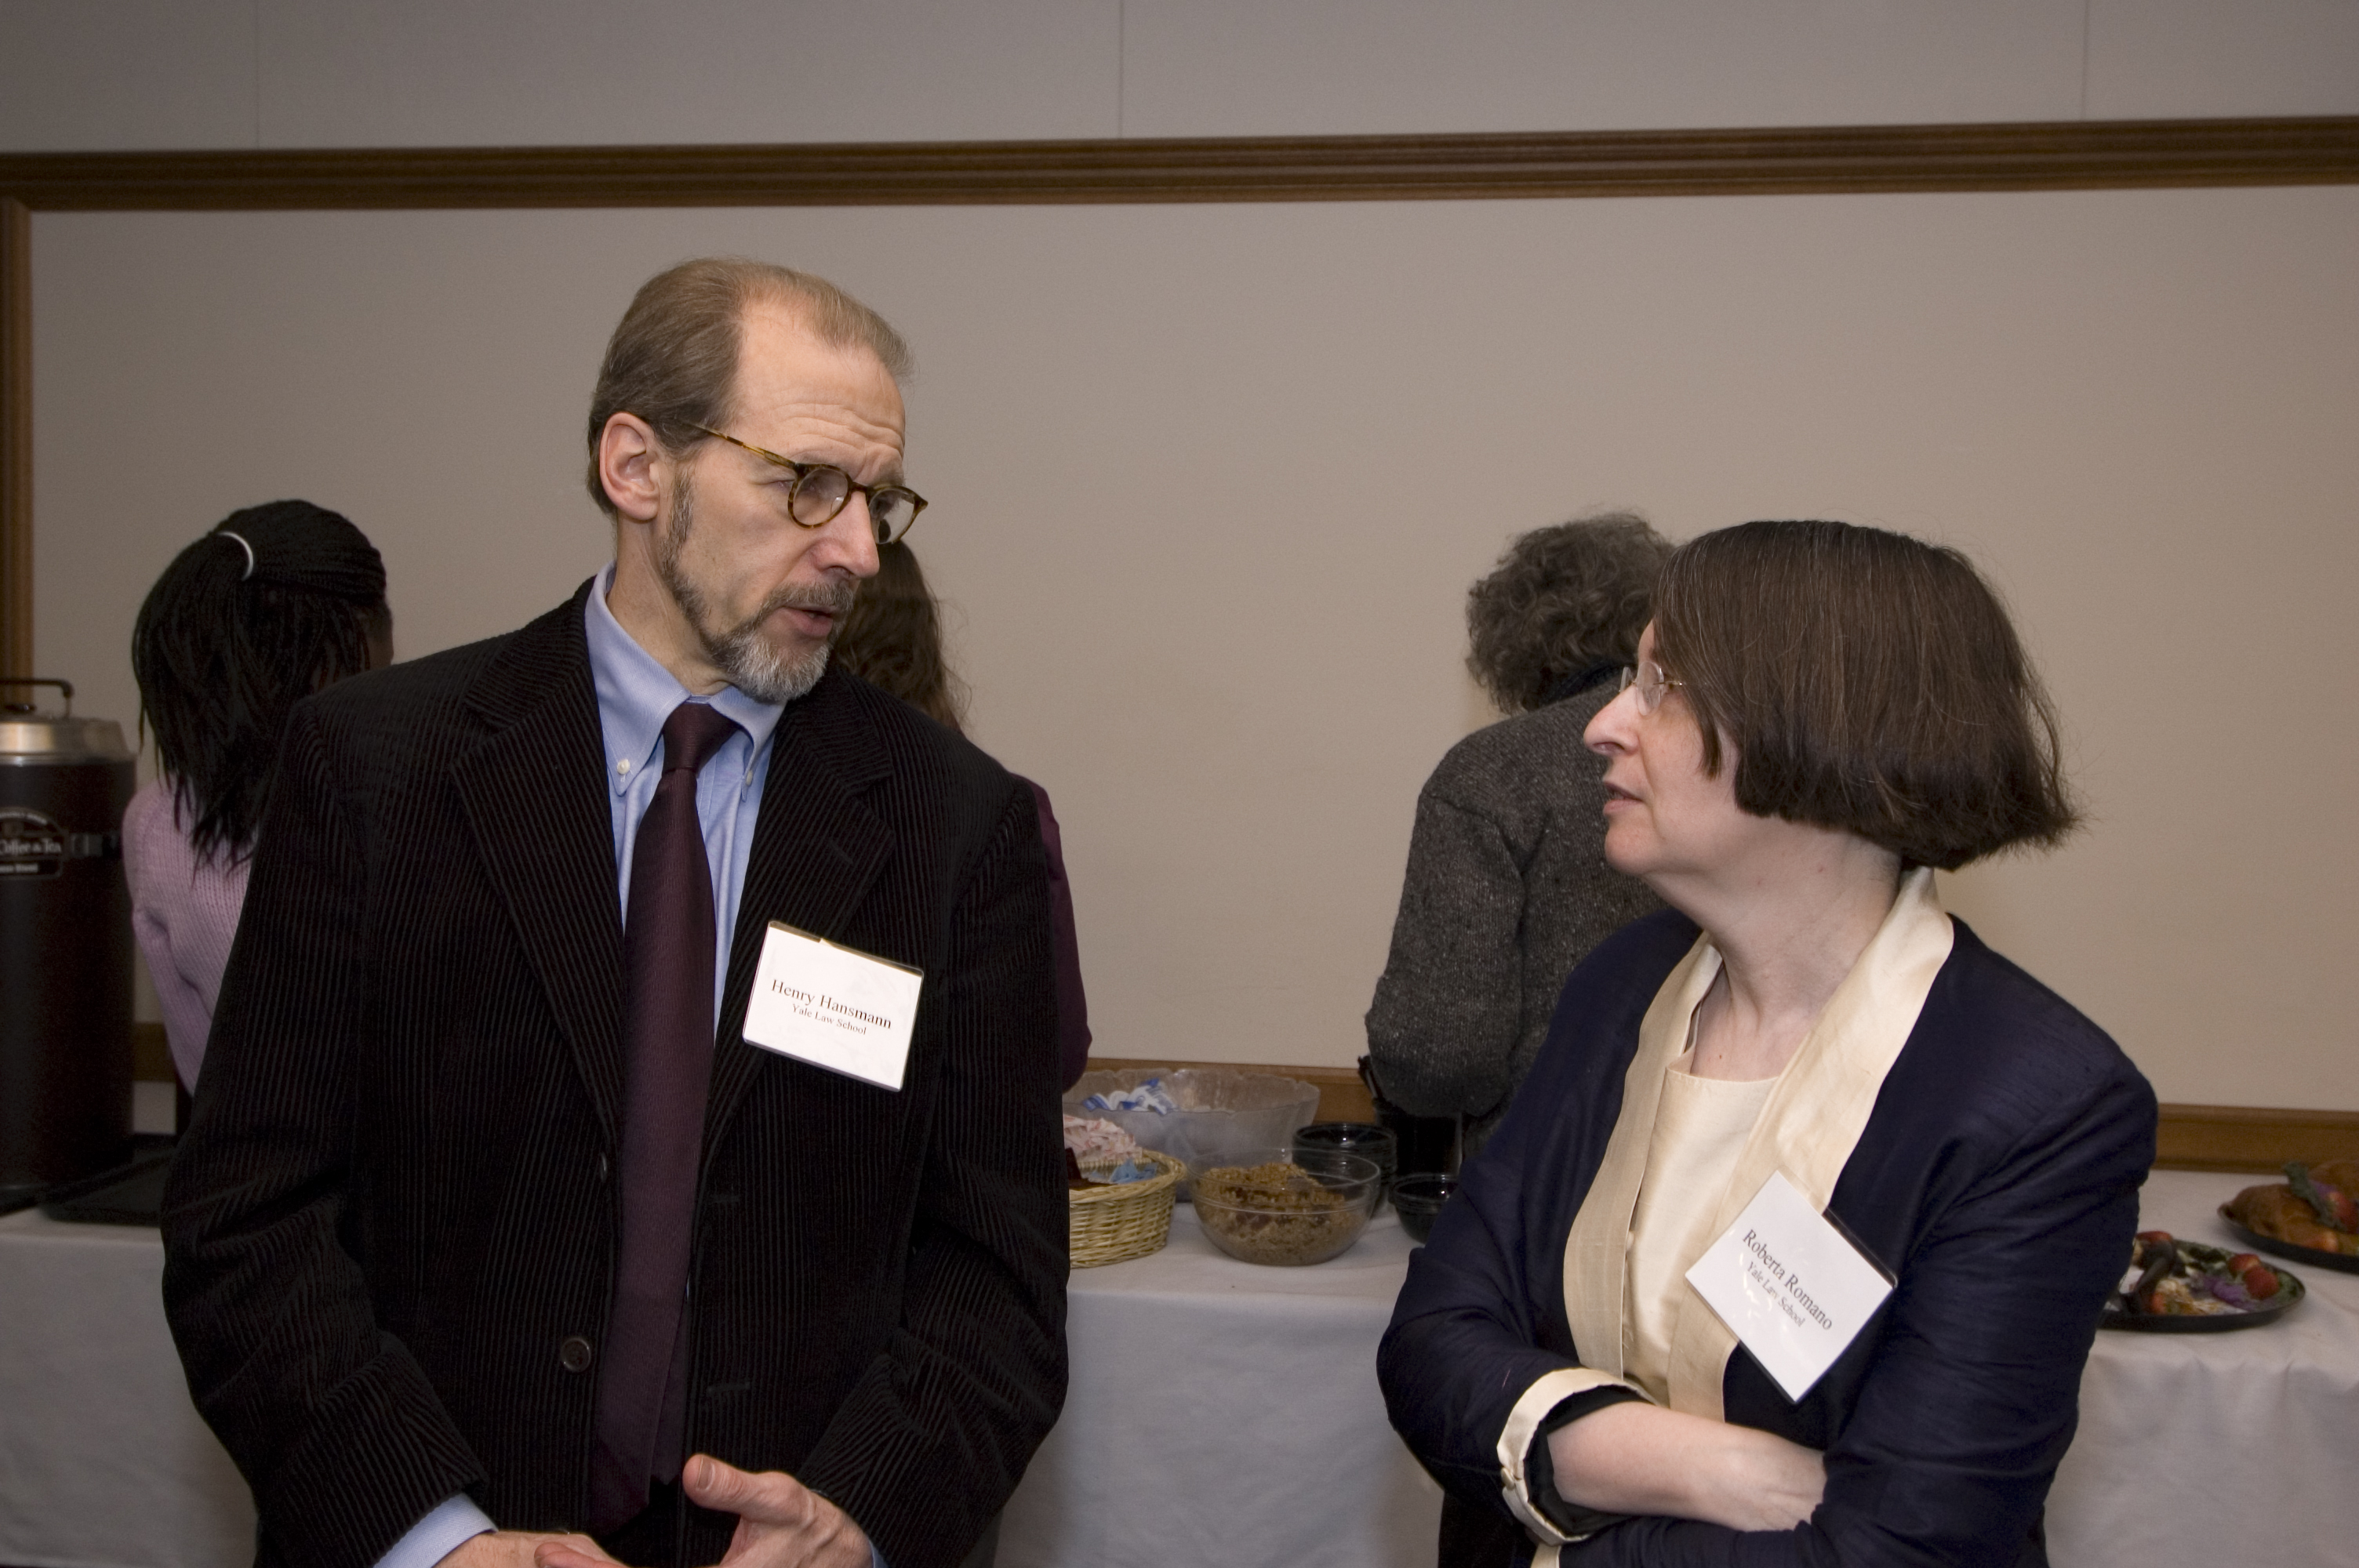 YLS Prof. Henry Hansmann '74 and YLS Prof. and Center Dir. Roberta Romano '80